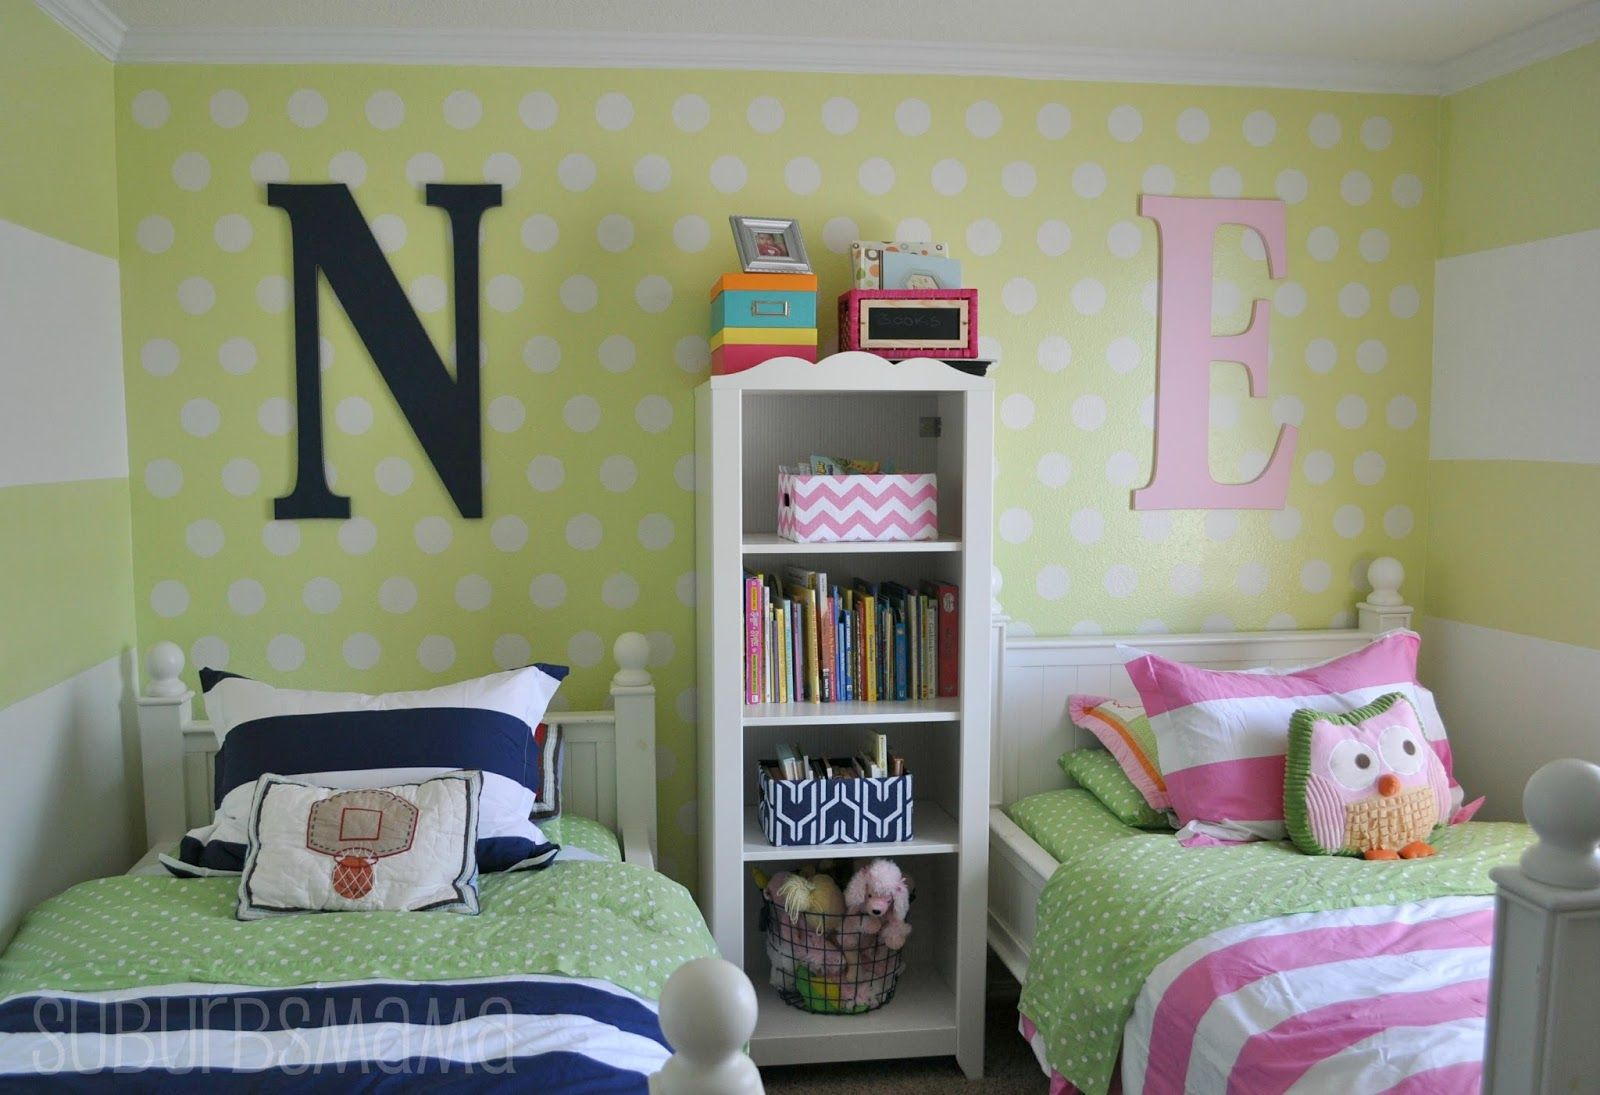 Bedroom design for boy and girl sharing - 16 Gorgeous Boy Girl Room Ideas Beautiful Boy And Girl Shared Bedroom With Two Single Size Beds Navy And Pink Stripes Pillows Blankets Plus Basketball